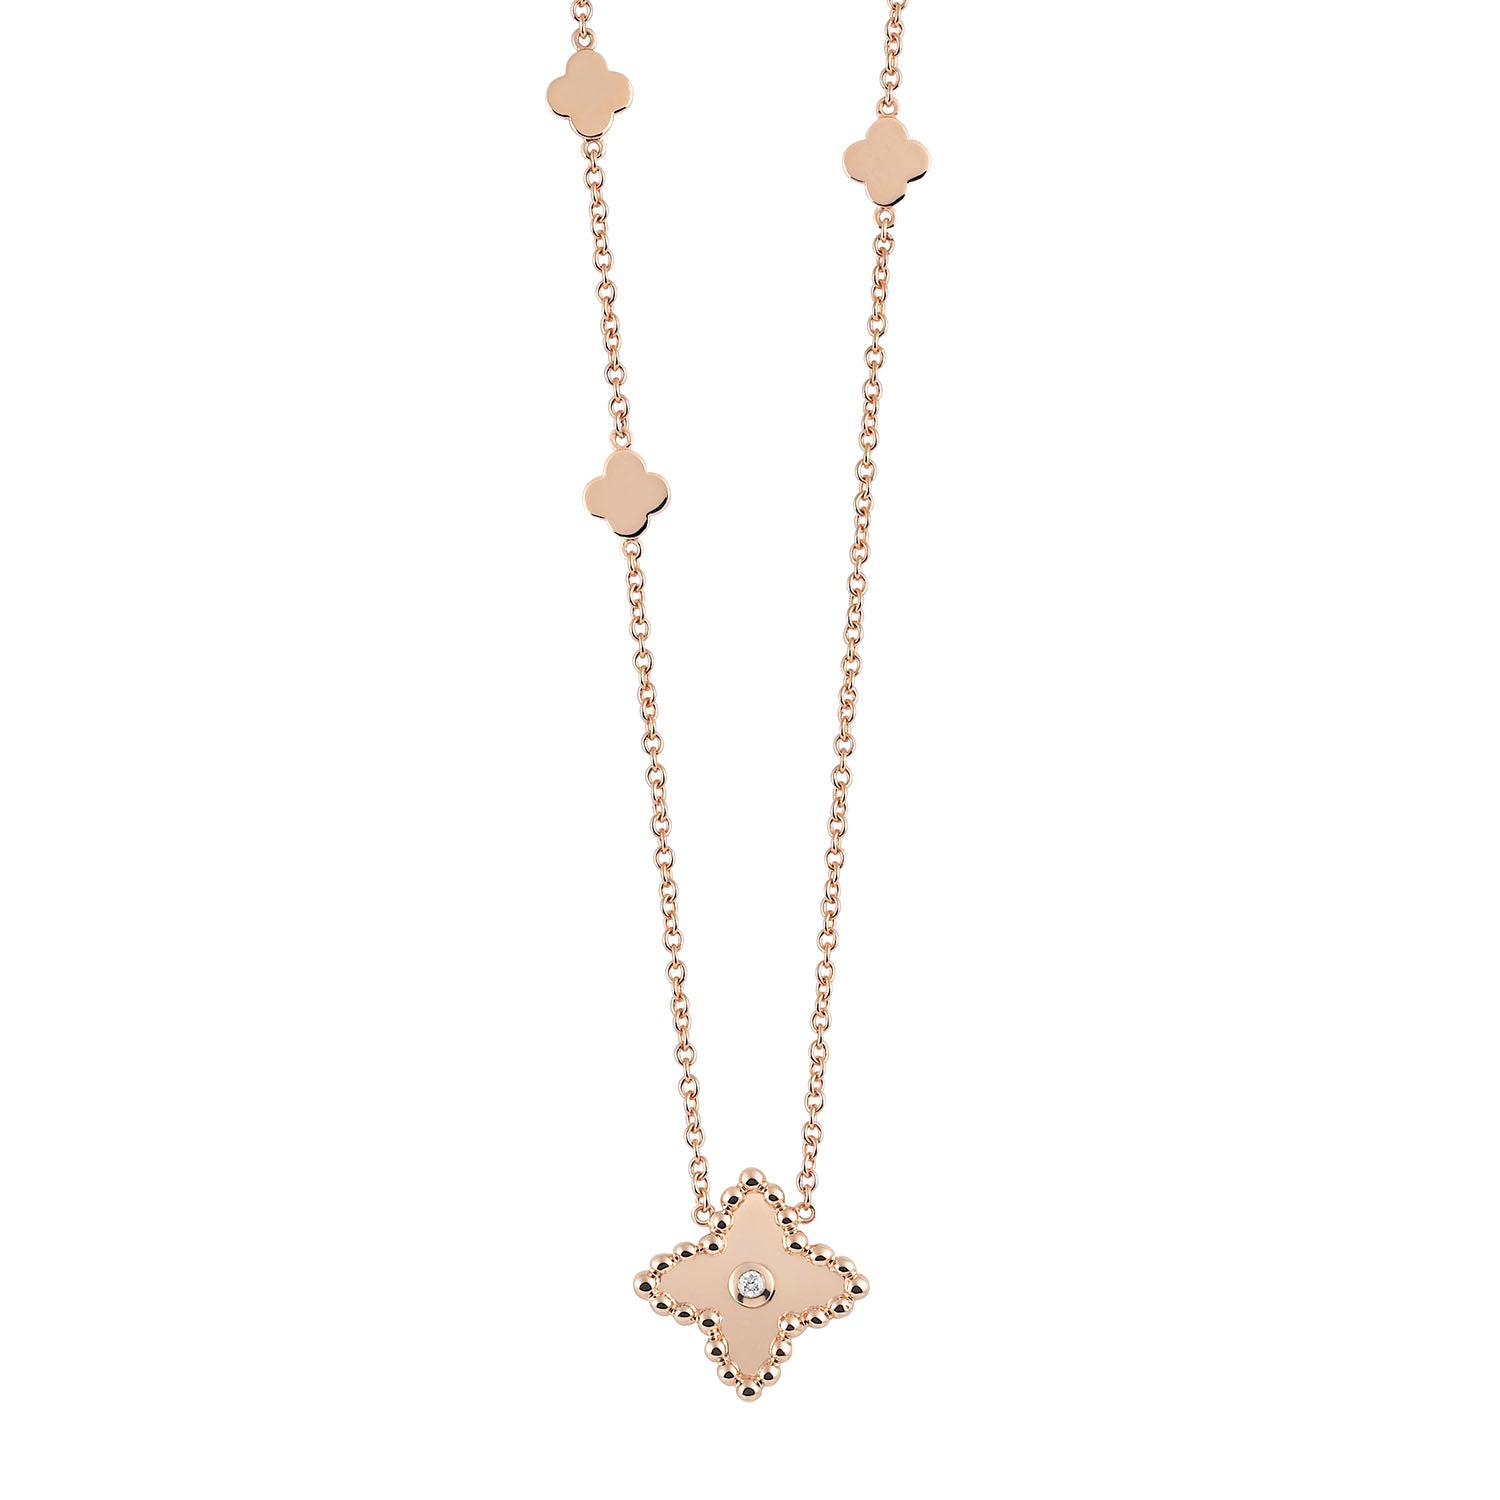 Palladio Necklace in 18k Rose Gold with Diamond - Orsini Jewellers NZ